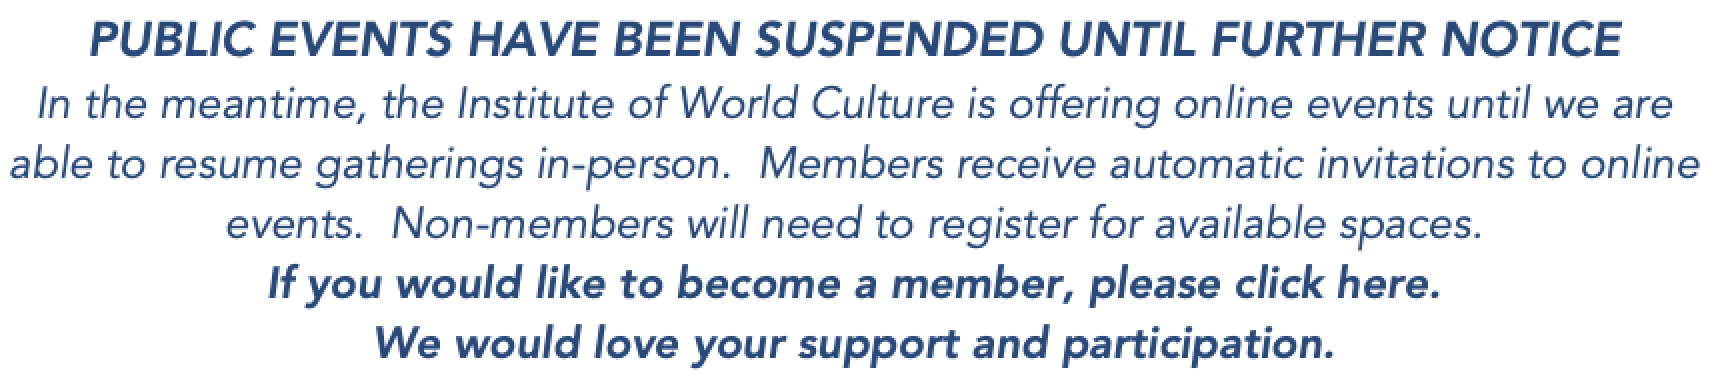 Events suspended until further notice